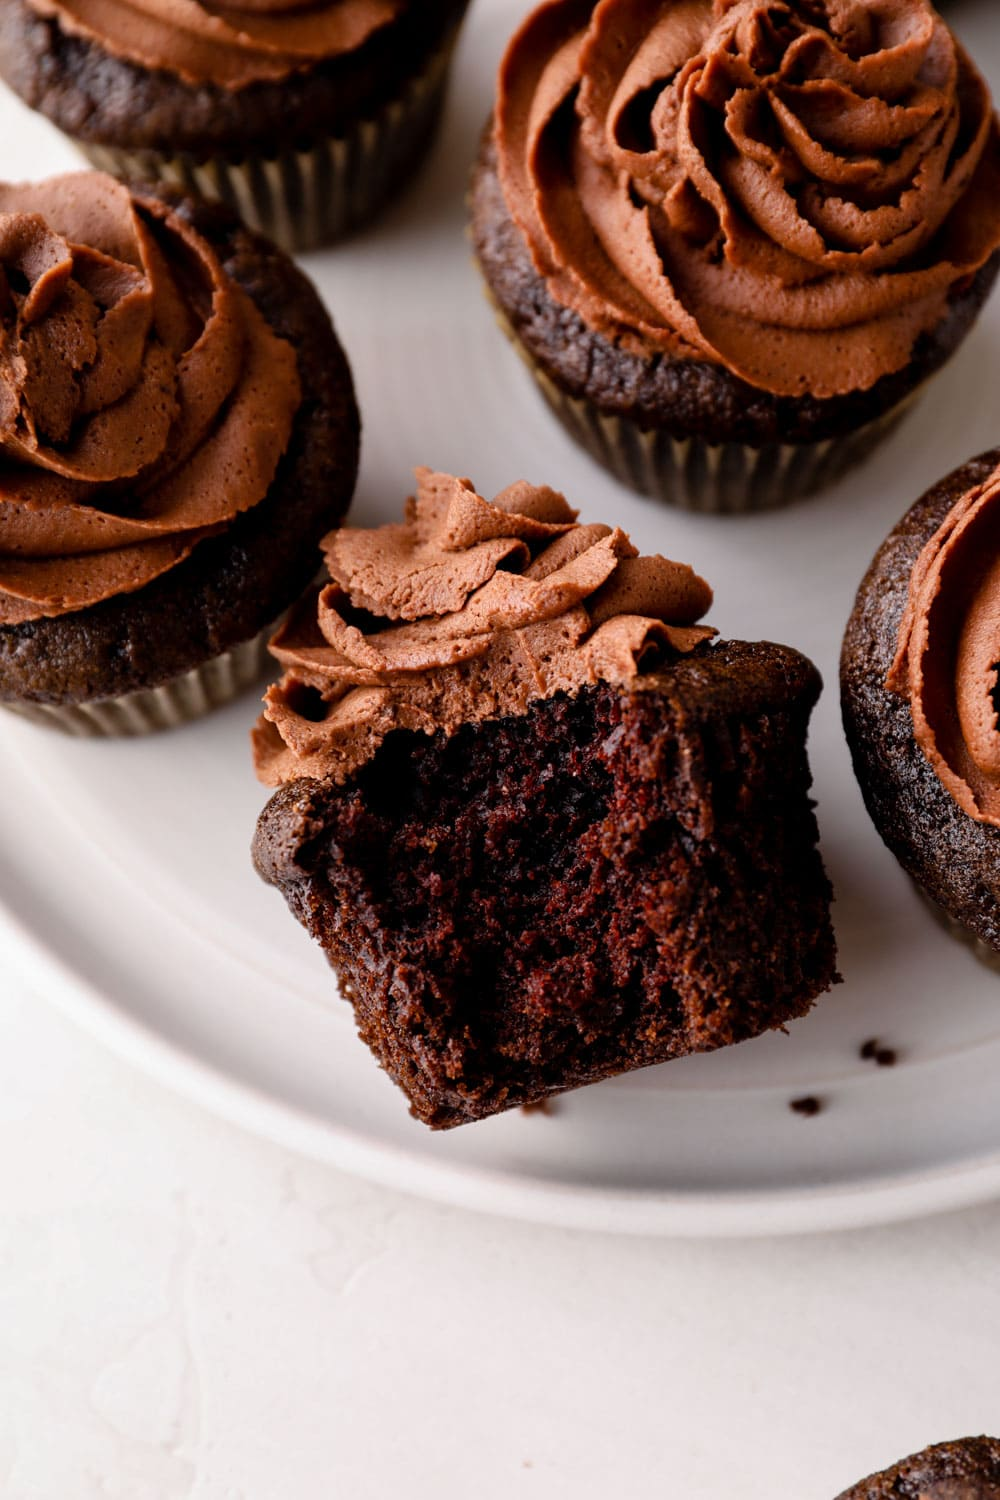 A bite out of a chocolate cupcake with chocolate frosting.